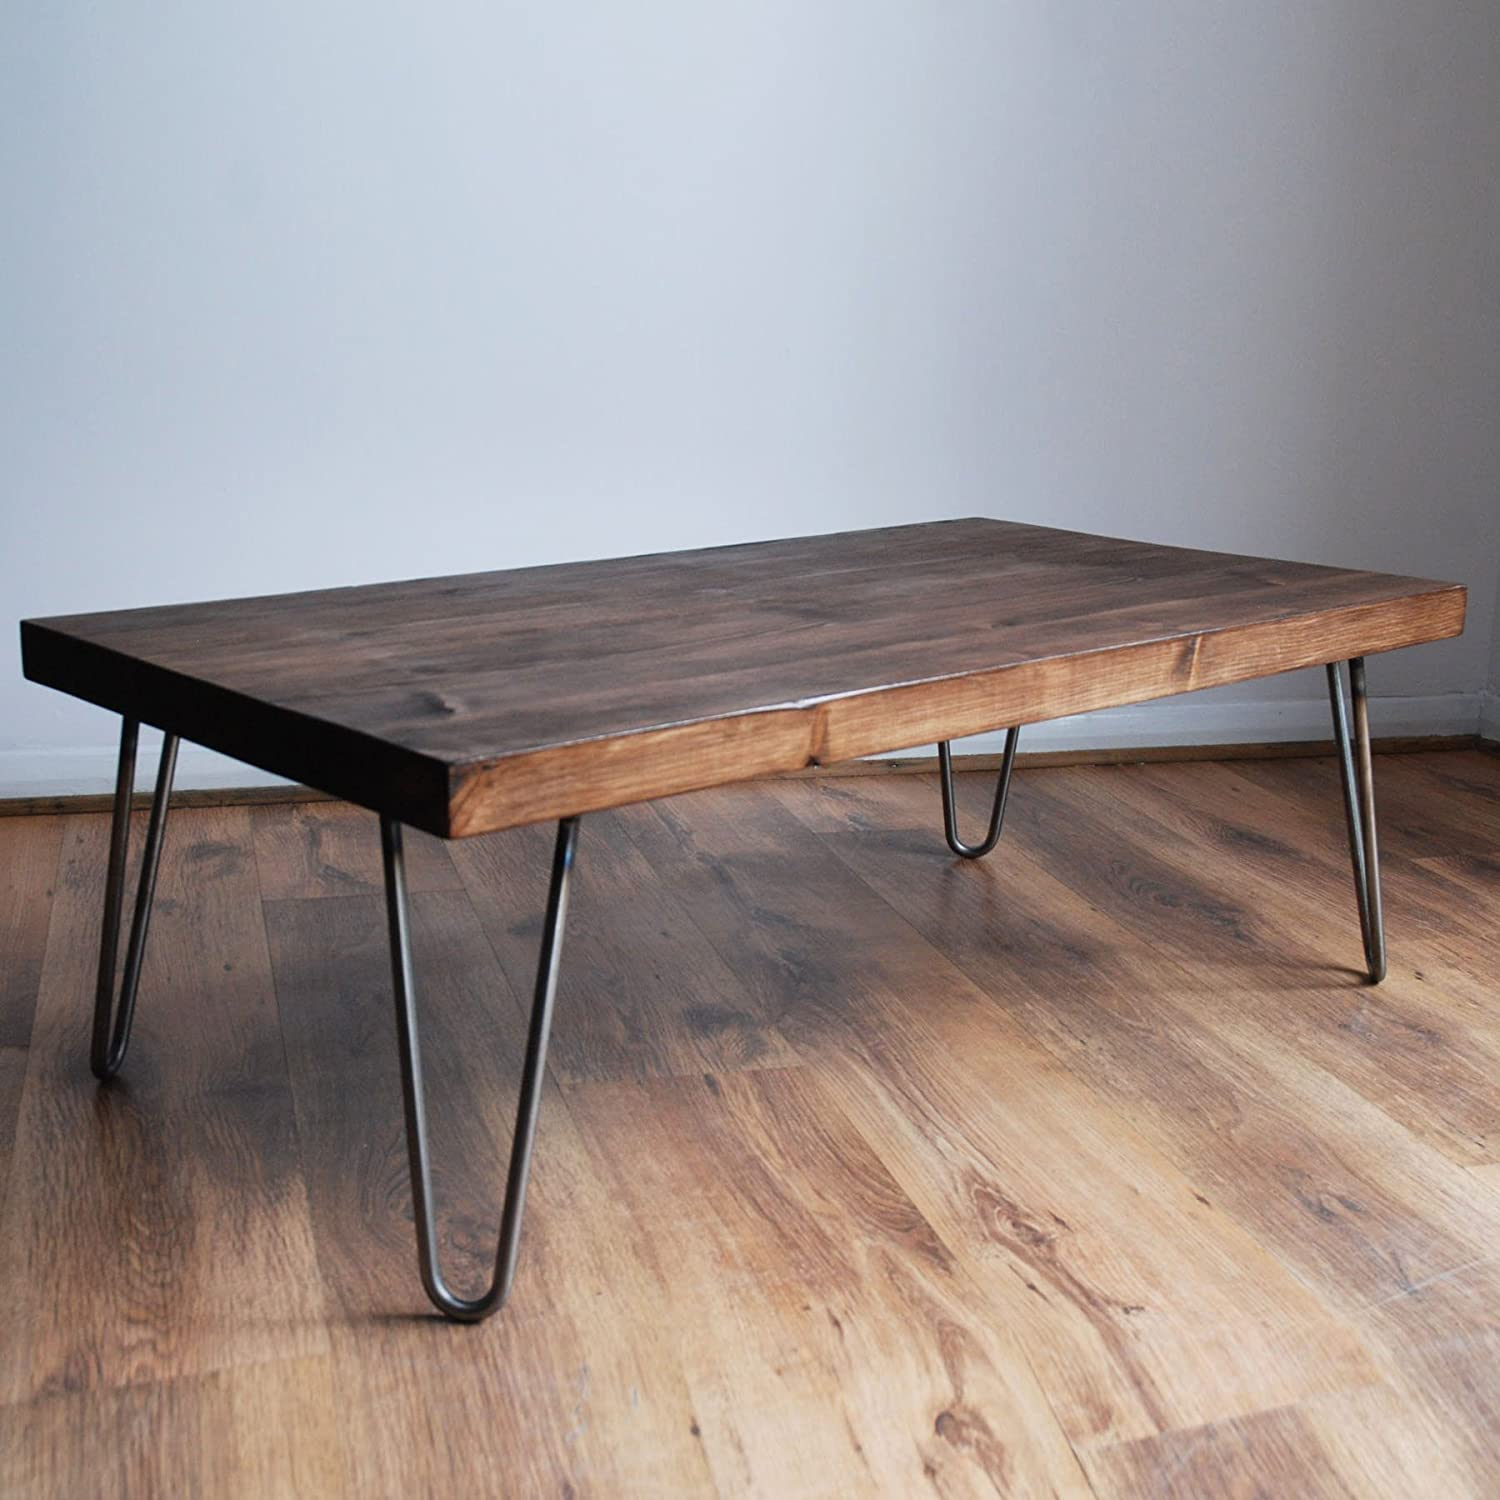 Rustic Vintage Industrial Solid Wood Coffee Table Black Bare Metal